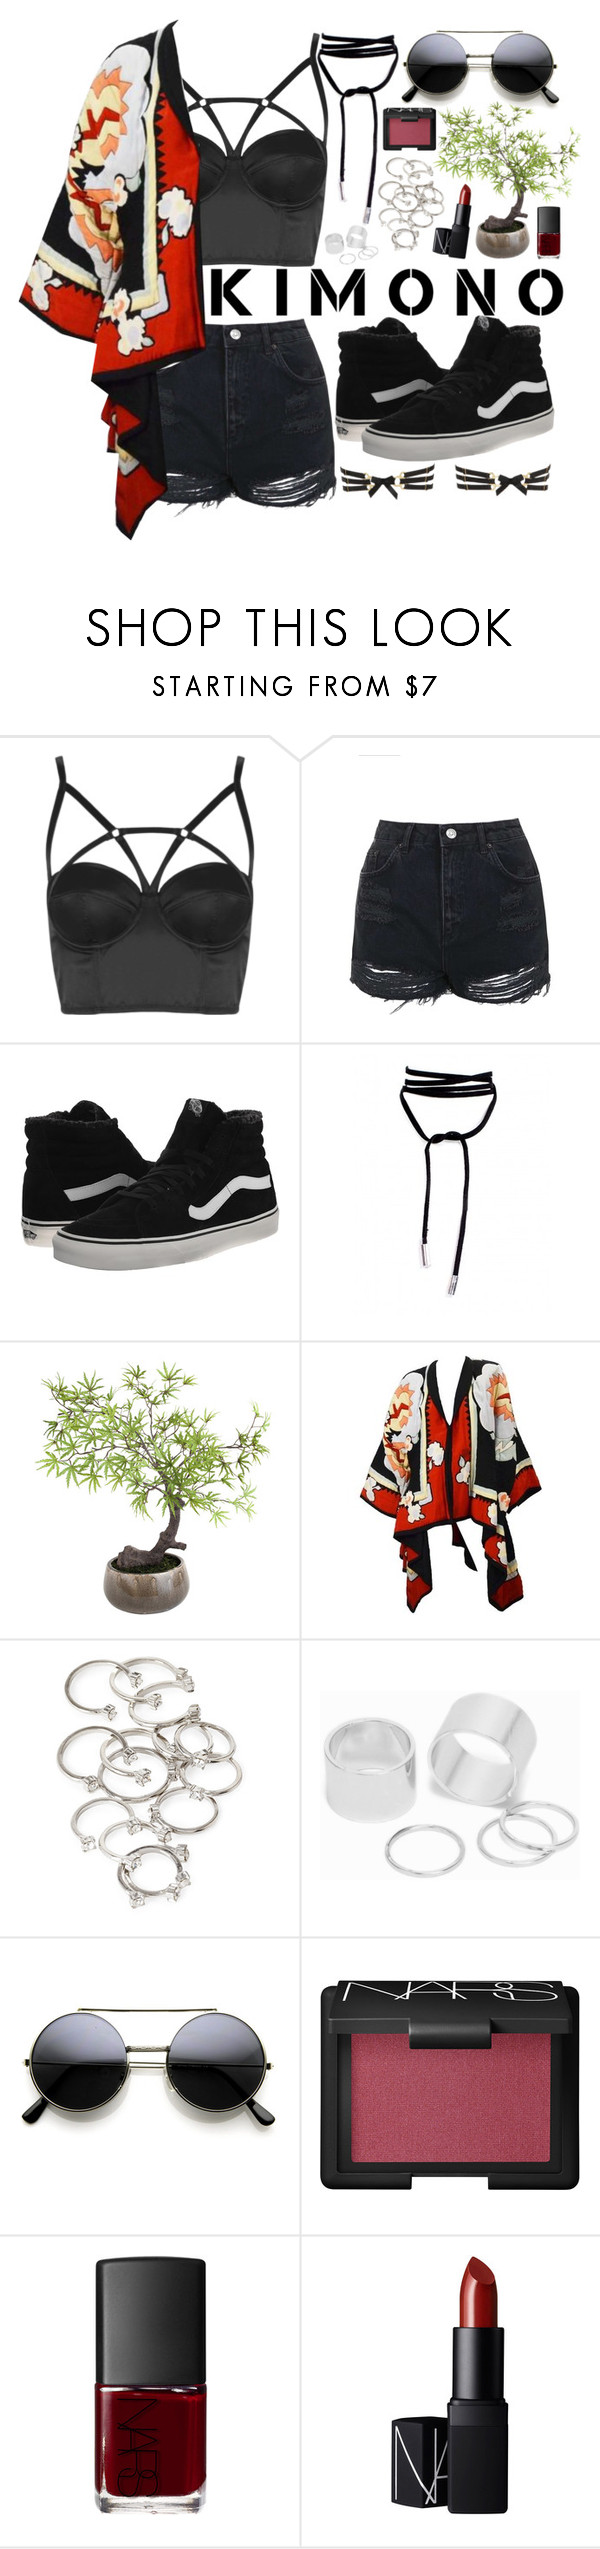 """Kimono."" by mxlewi ❤ liked on Polyvore featuring Topshop, Vans, Sia, Forever 21, Pieces, NARS Cosmetics and Bordelle"